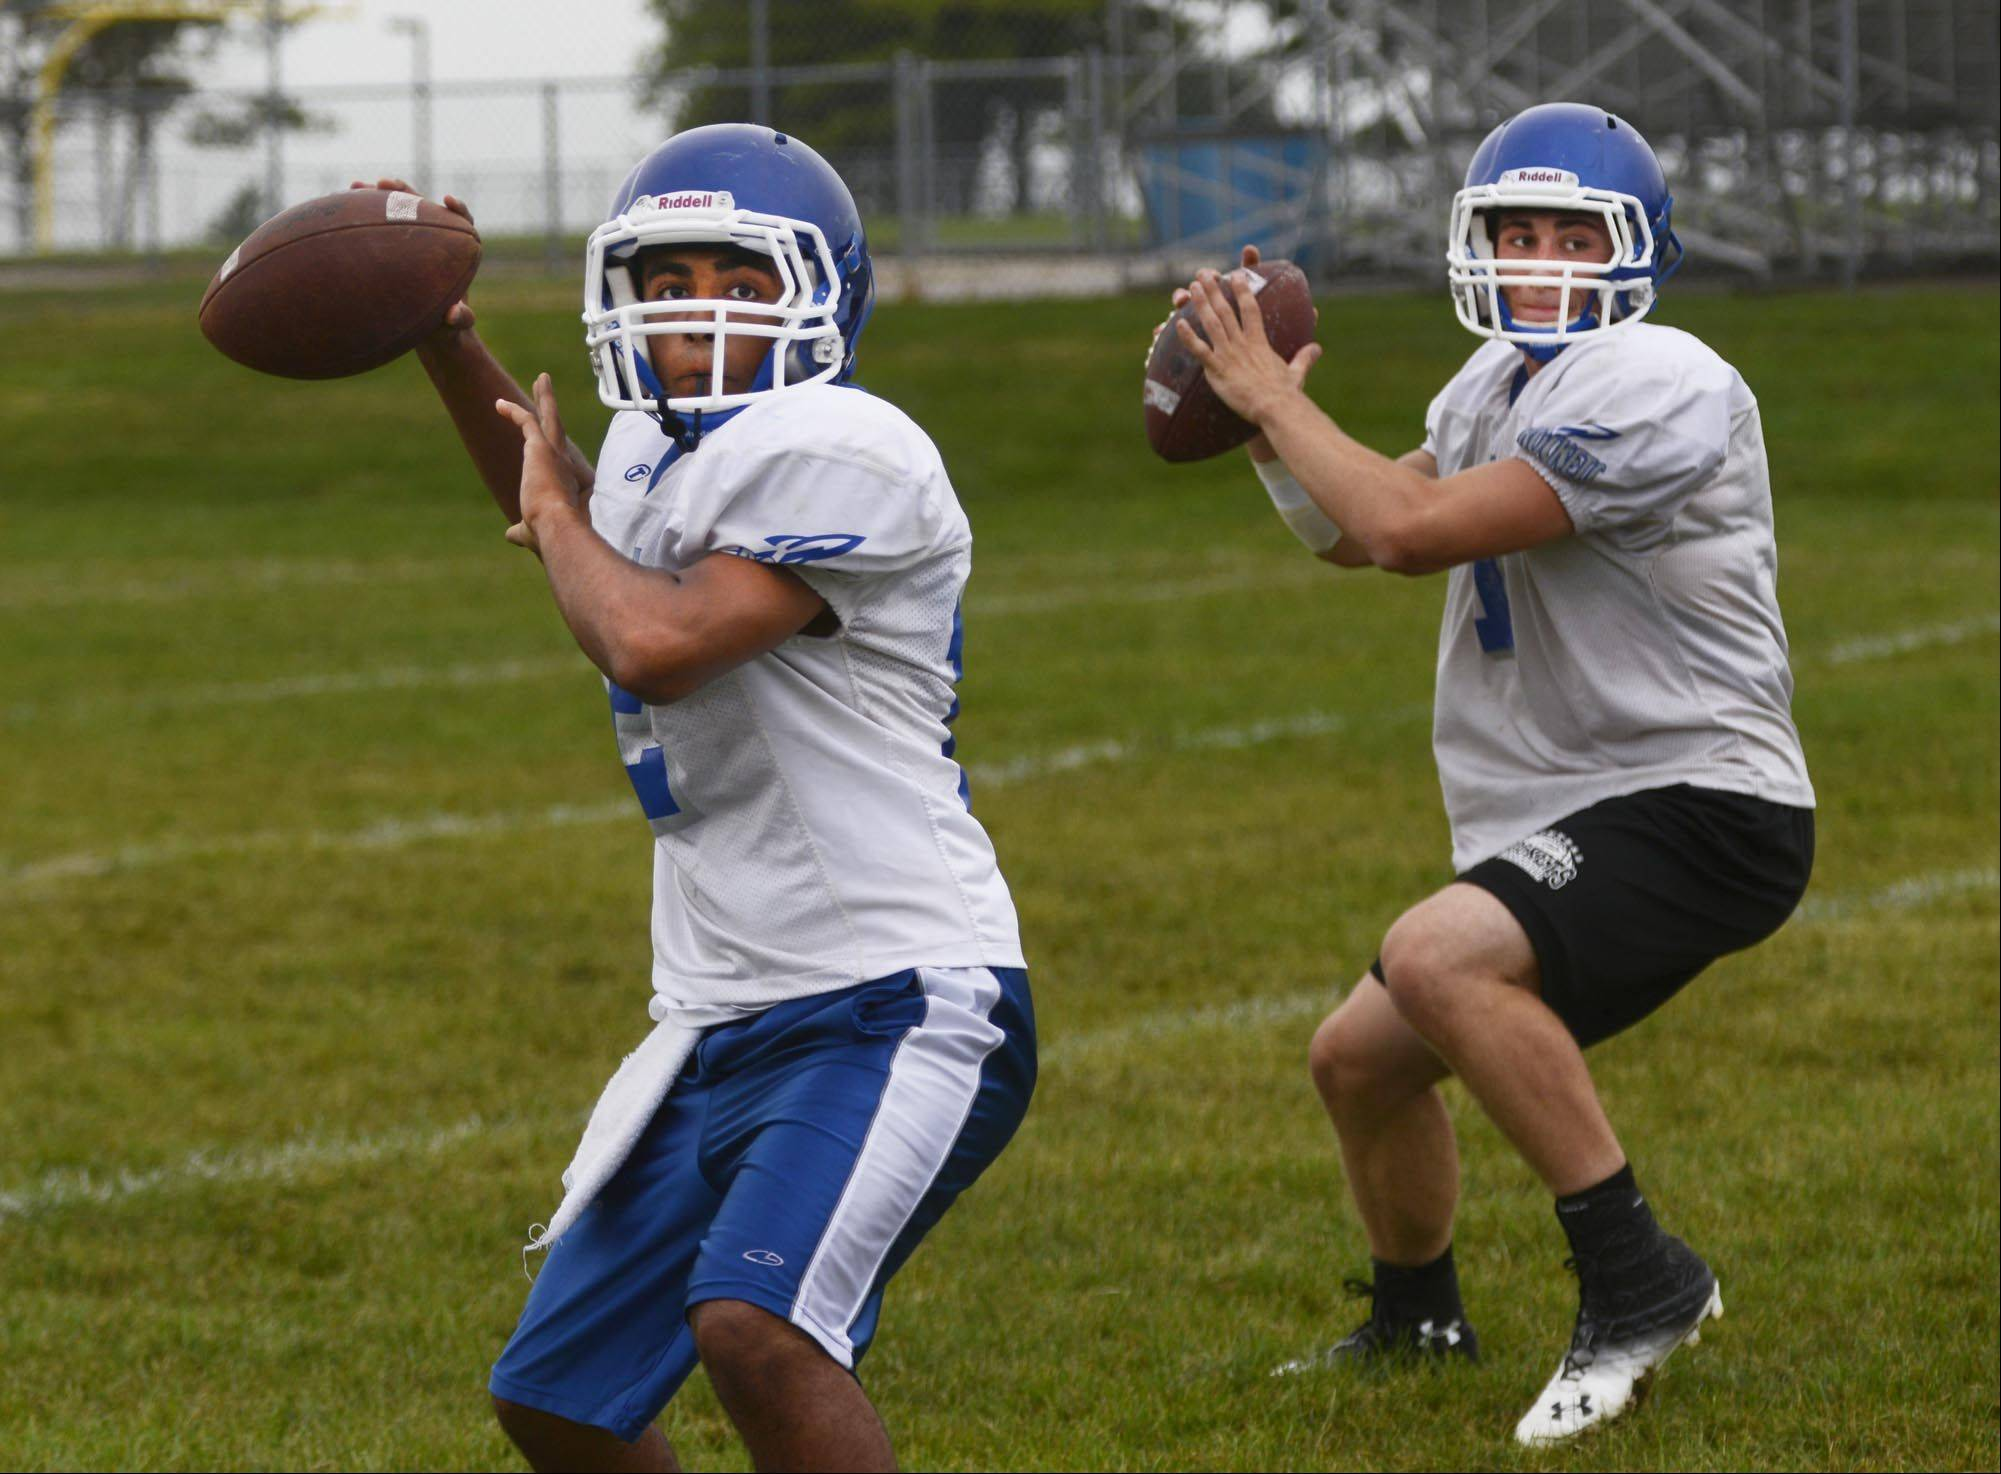 Quarterbacks Parth Patel, left, and Casey Matthews drop back during drills at Burlington Central.